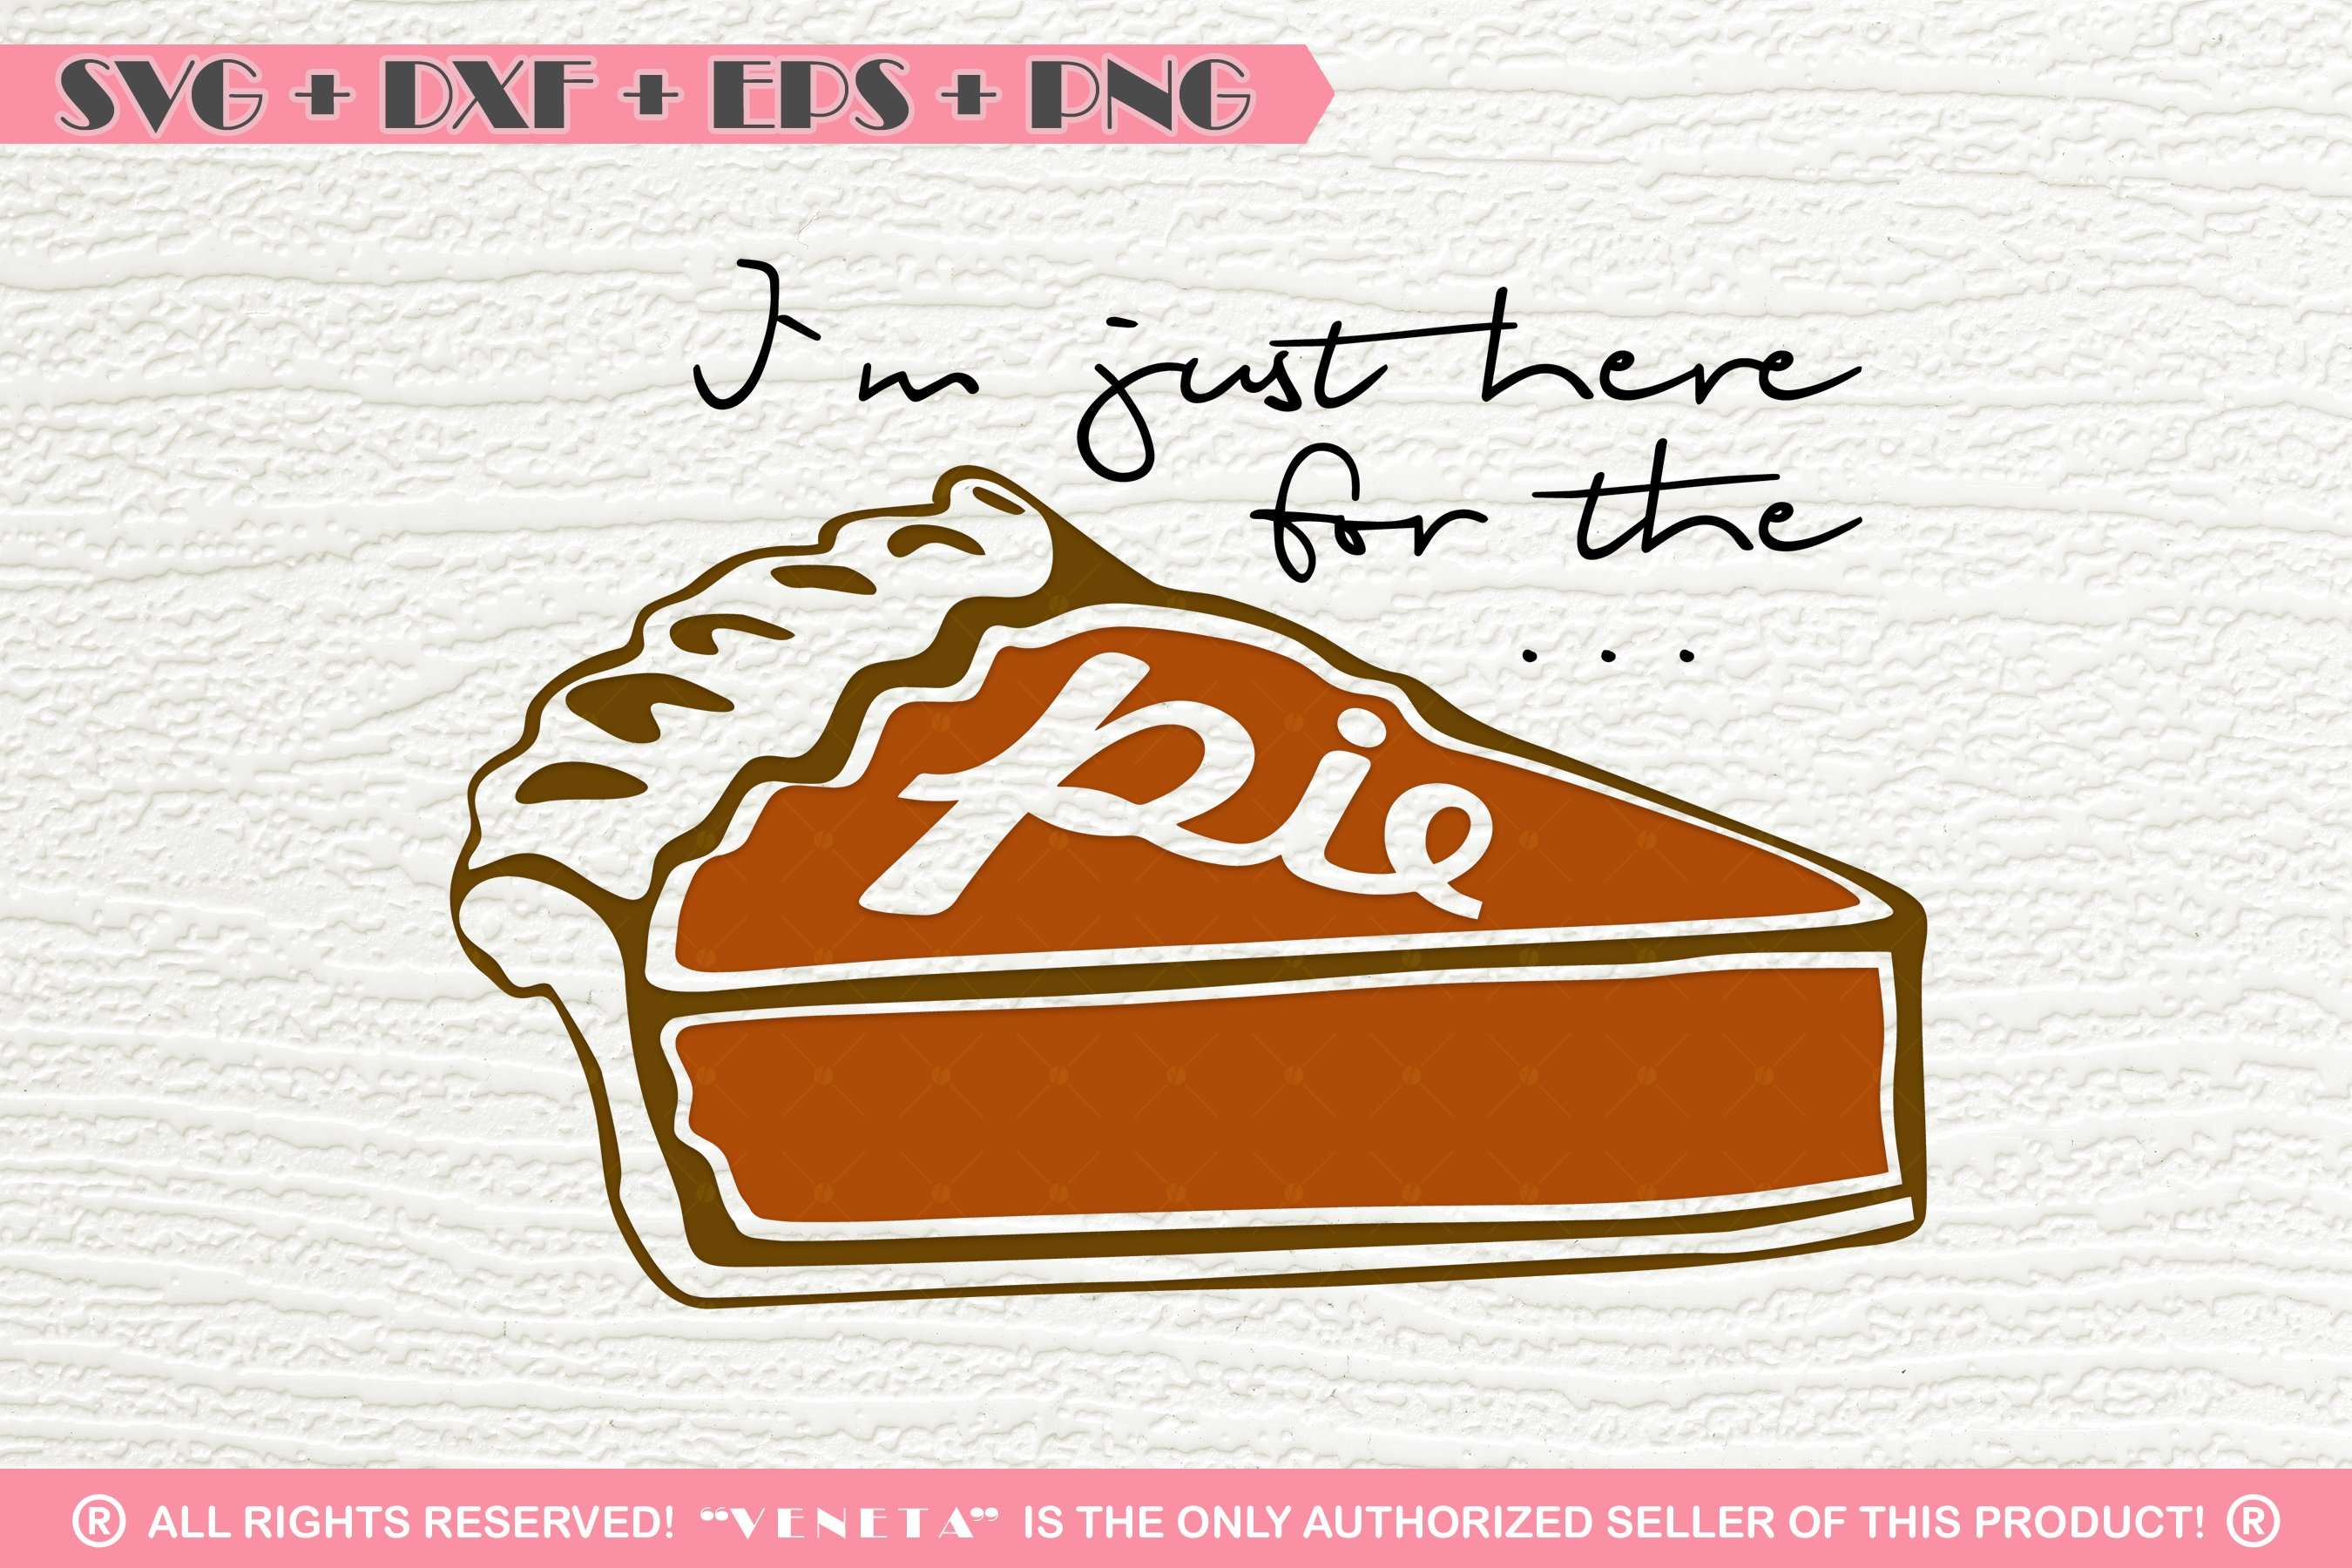 Im Just Here For The Pie Quotes Svg Dxf Png Eps Cutting 116988 Svgs Design Bundles